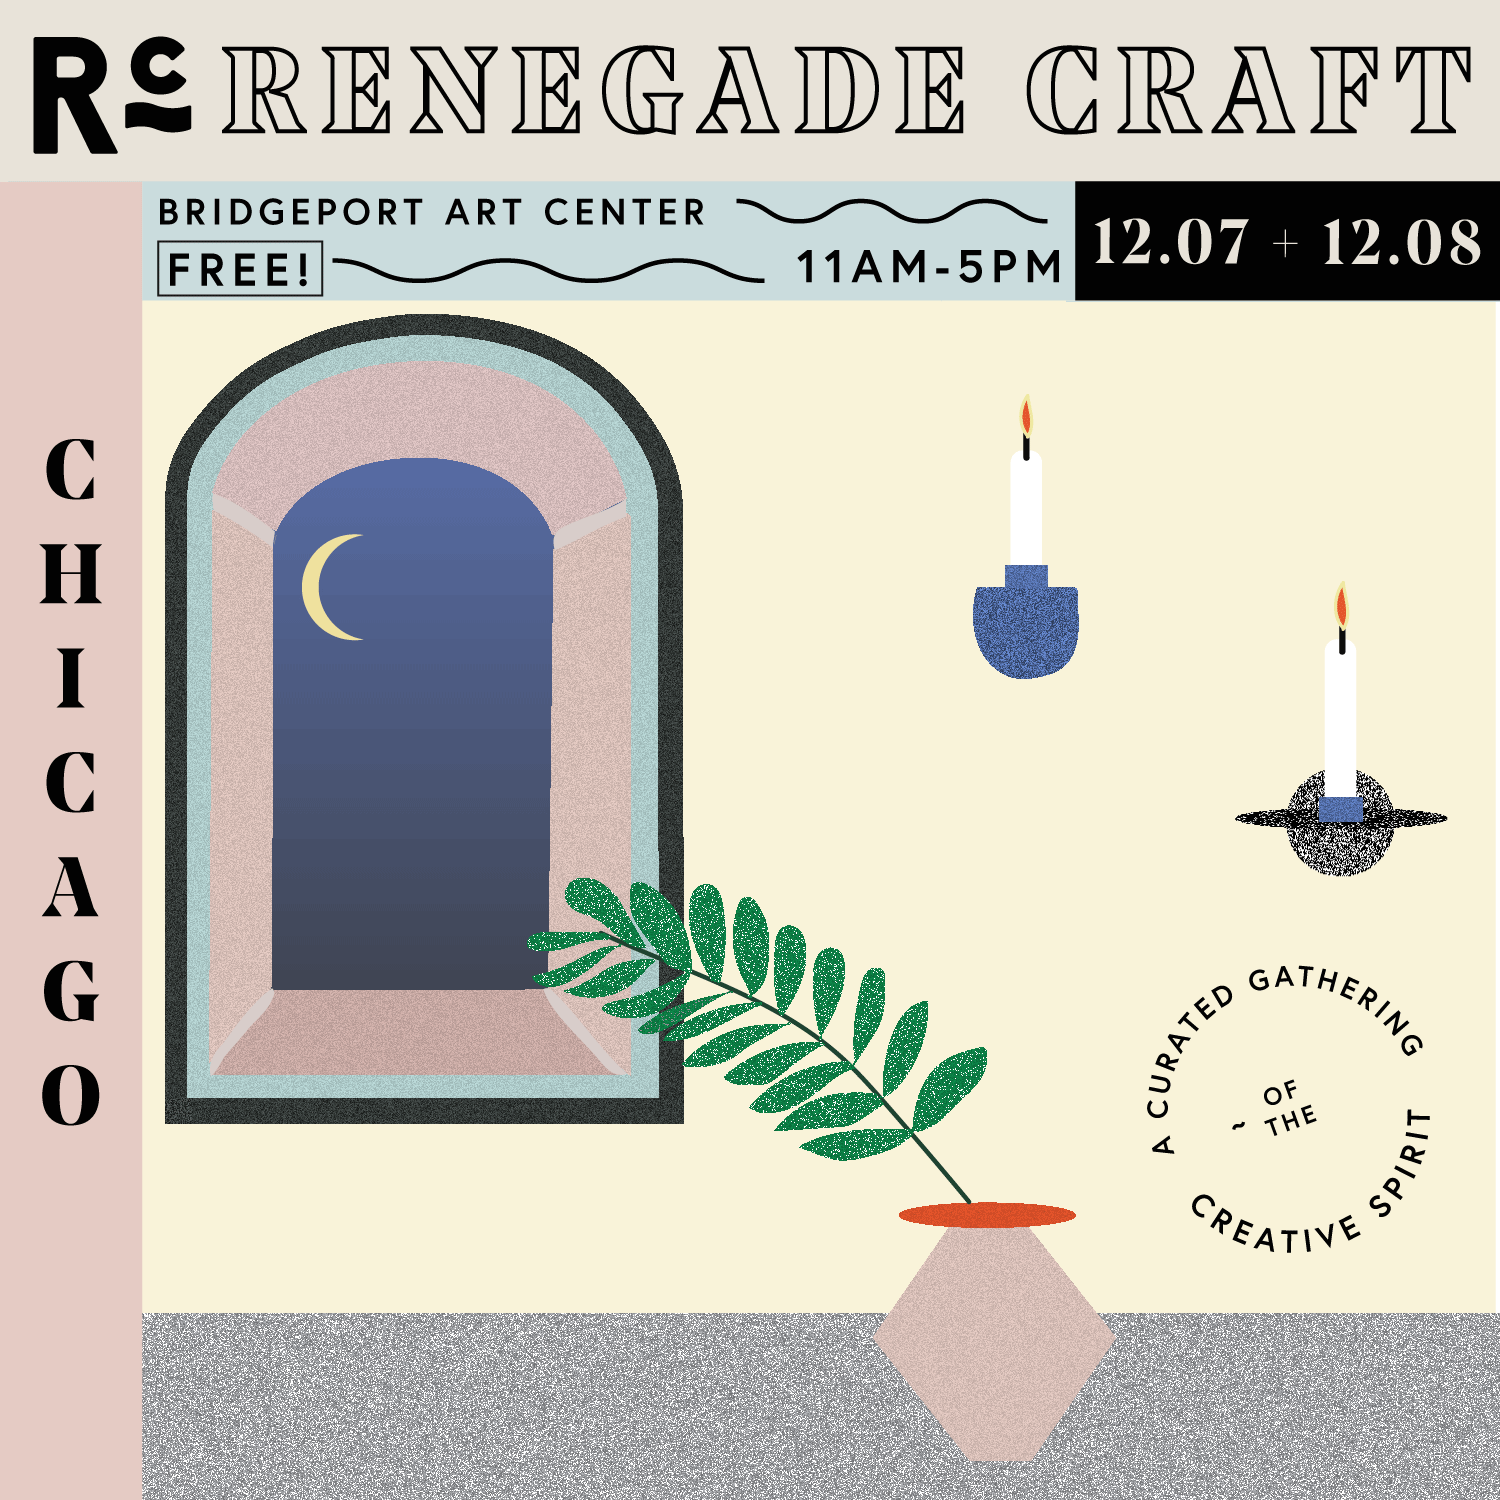 Renegade Craft Chicago